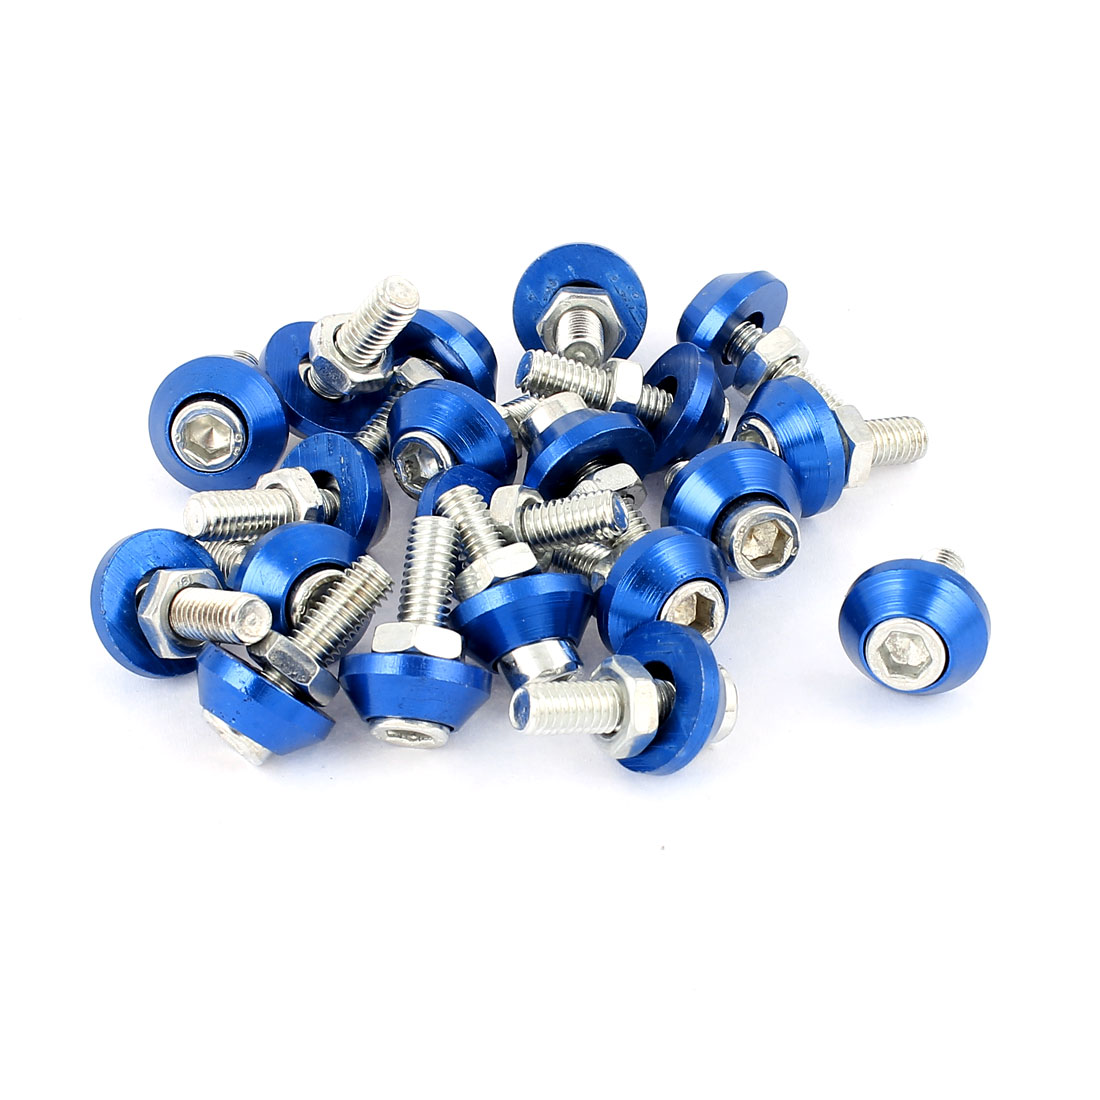 Motorcycle License Plate Bolt Hex Cap Screws Blue Silver Tone 20 Pcs